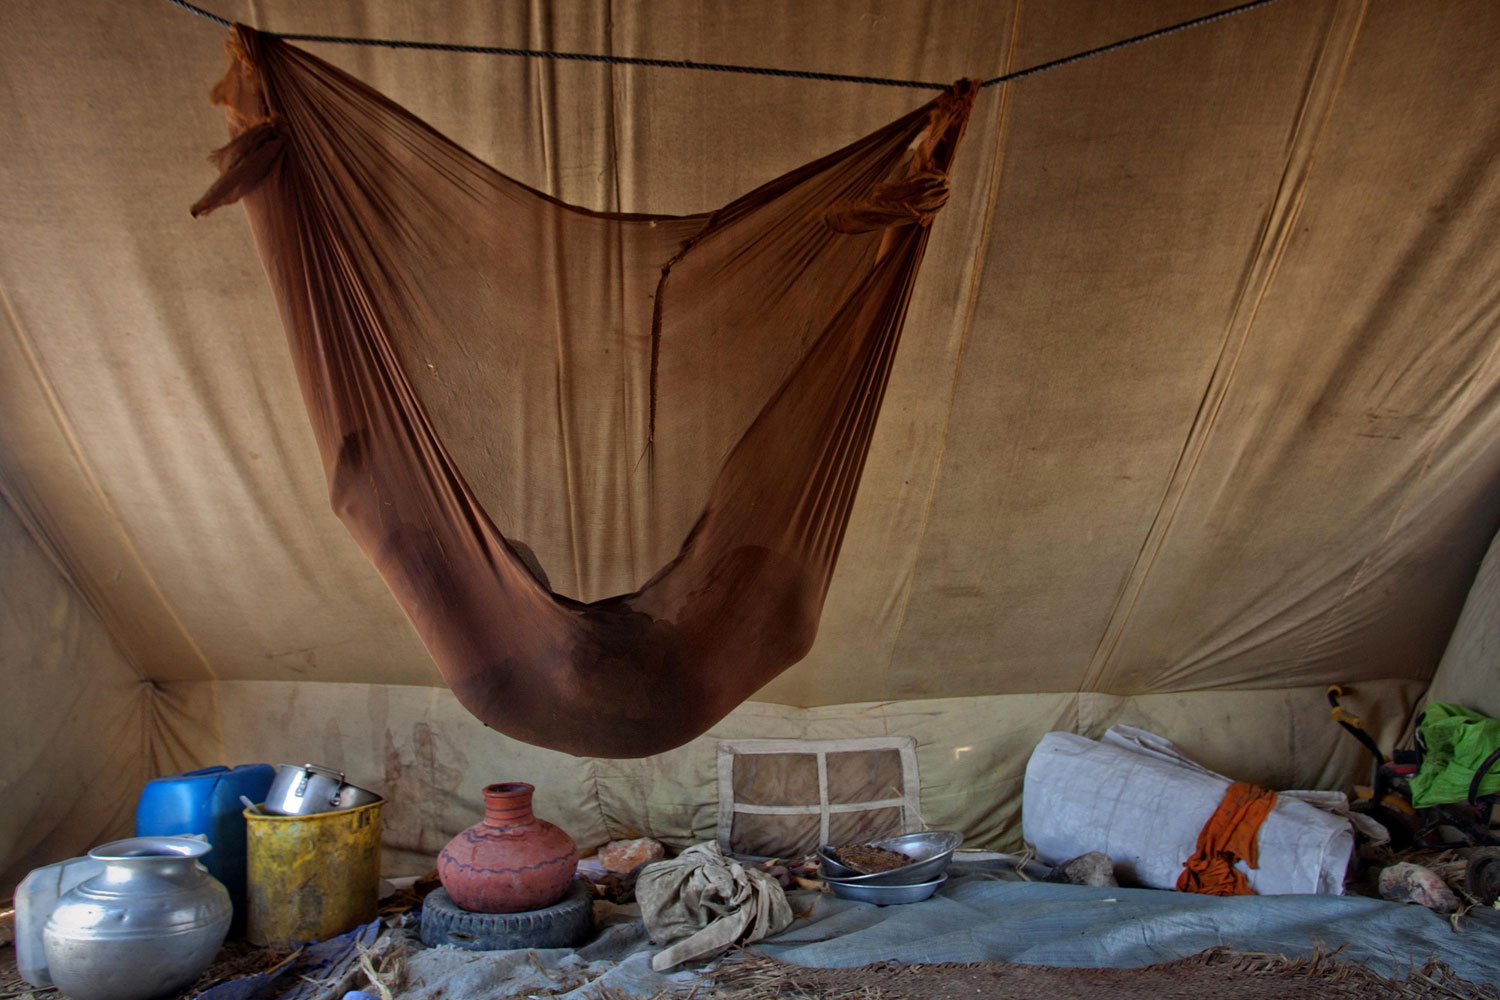 July 31, 2011. One and a half-year-old Muskan, internally displaced by the 2010 floods, sleeps in a hammock over cooking utensils inside her family's tent set up along a roadside in Jamshoro, in Sindh province. More than 800,000 flood affected families remain without permanent shelter, according to the aid group Oxfam, and more than a million people need food assistance.